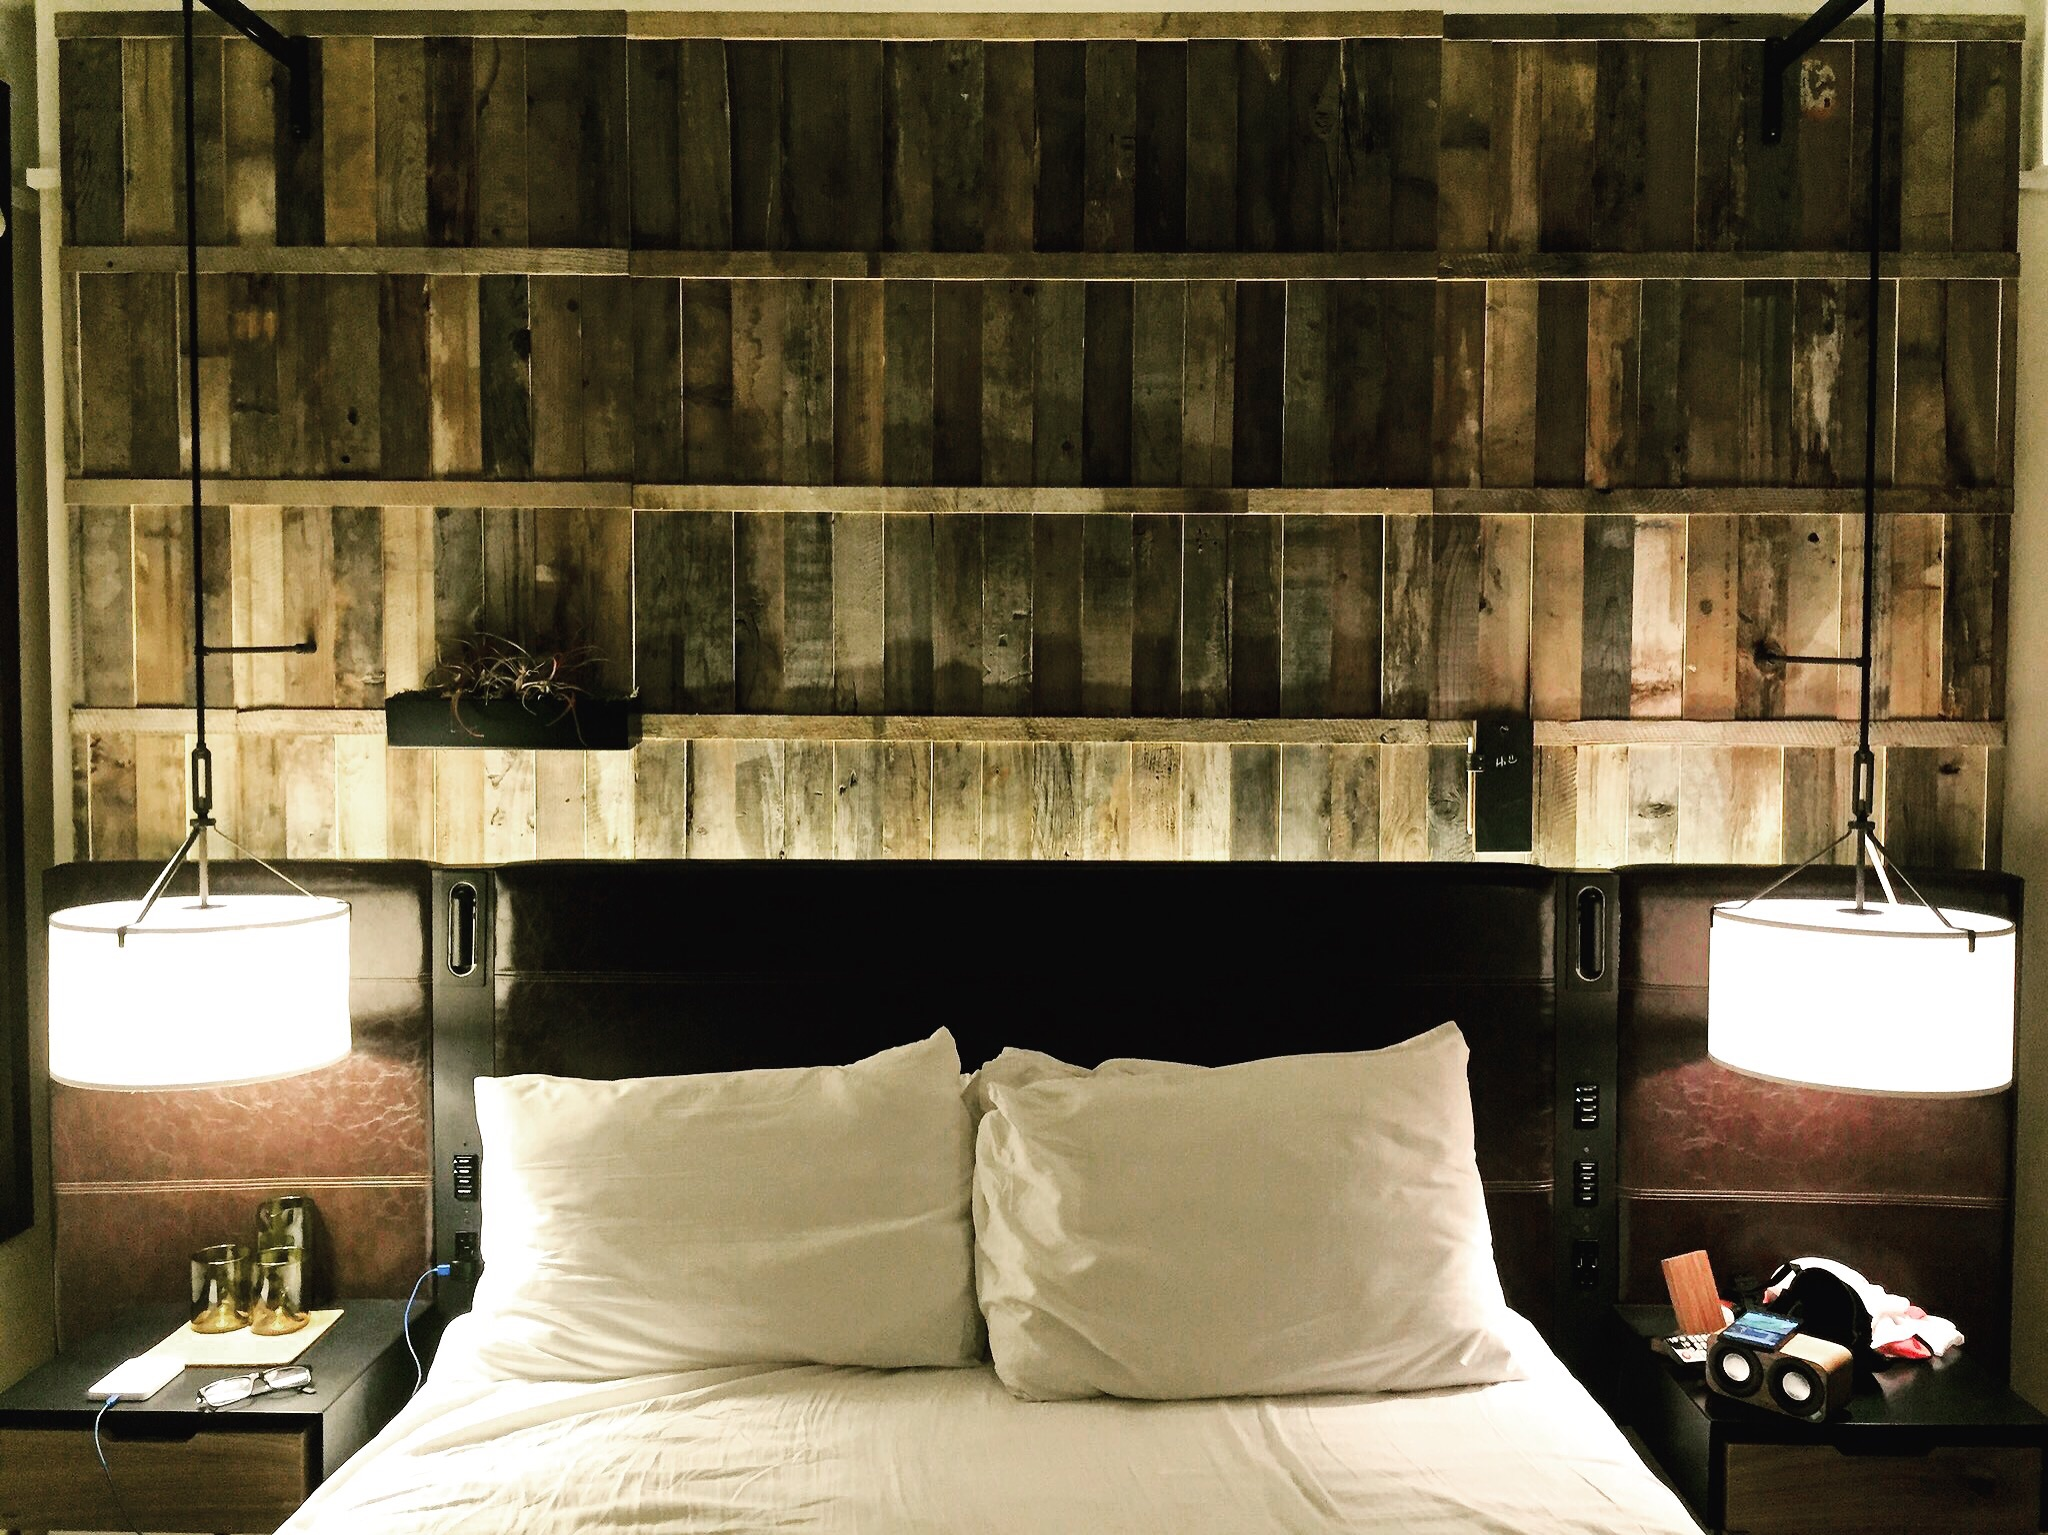 Hemp-blend mattresses, organic cotton sheets and reclaimed wood made it feel like I was sleeping in a treehouse, only better. :)